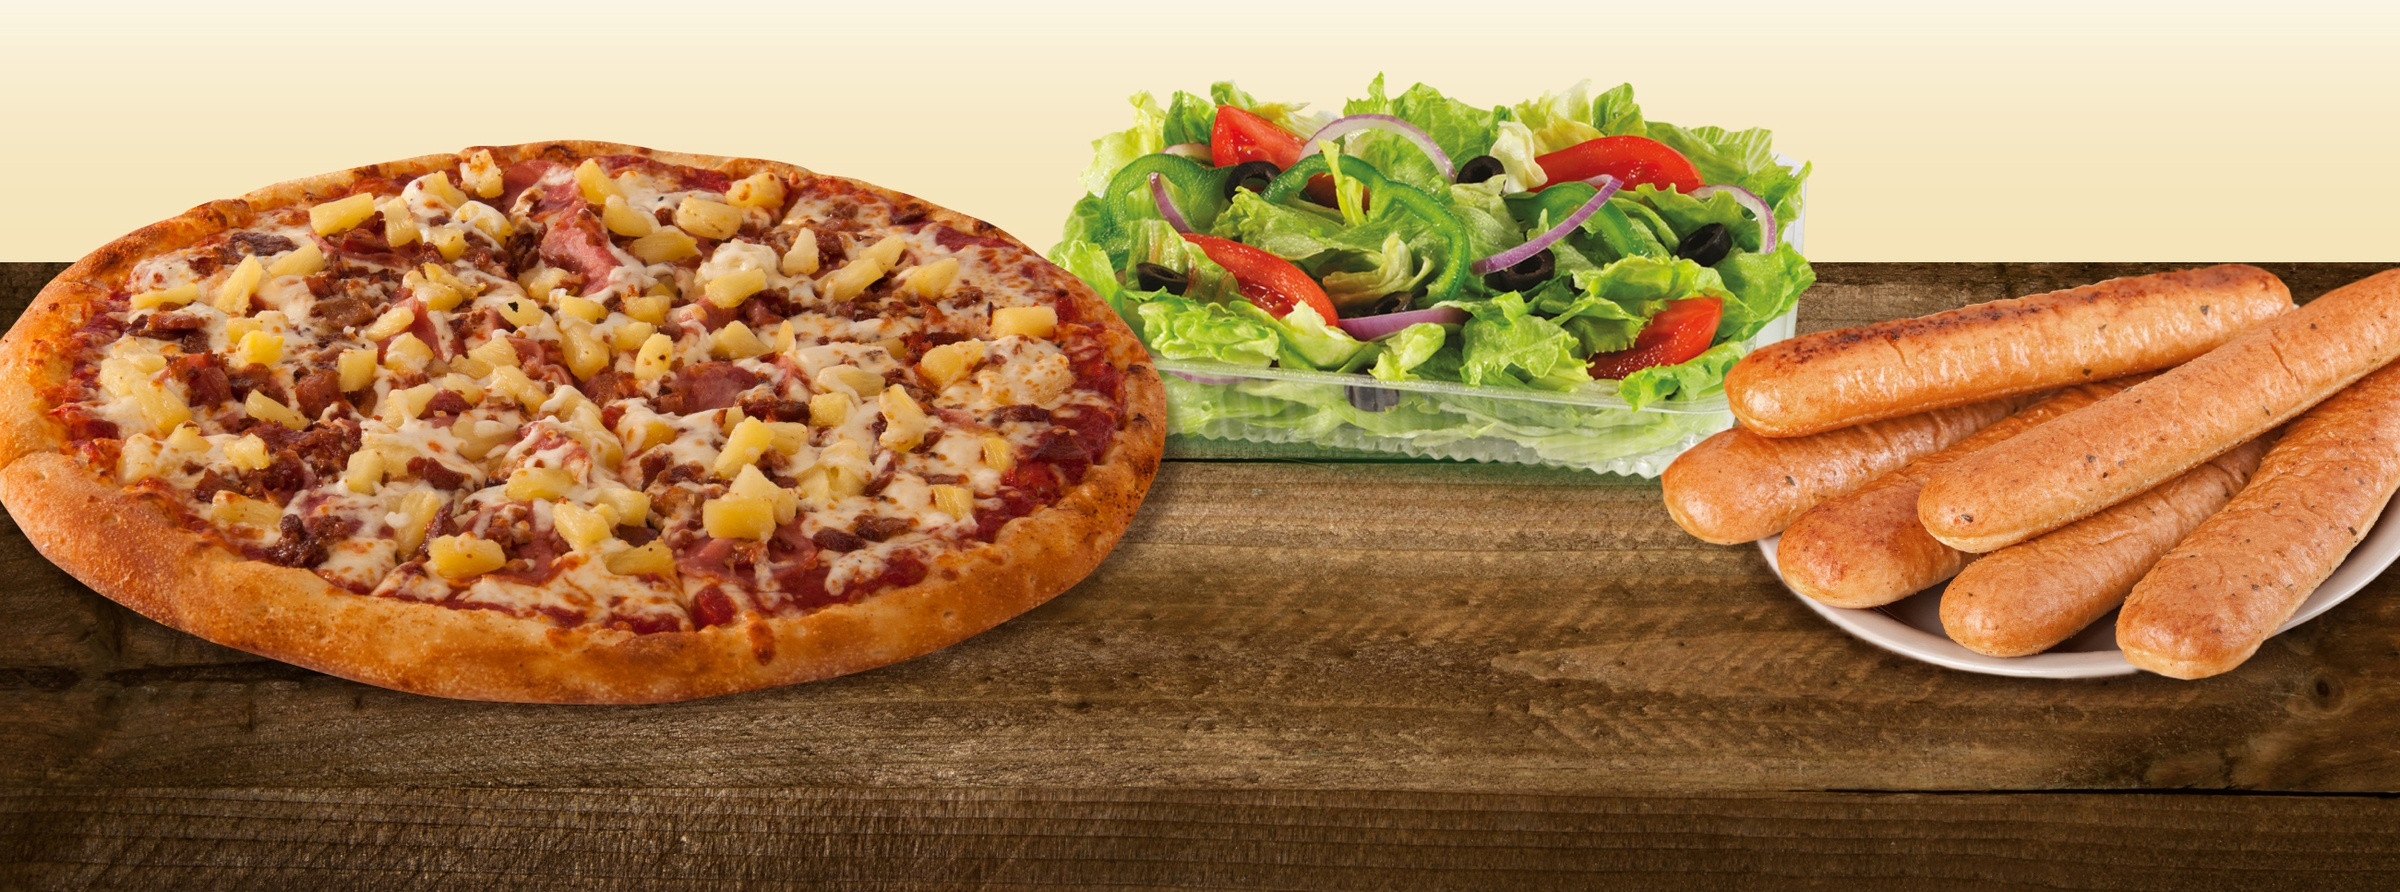 Snappy Tomato Pizza Menu  Snappy Tomato Pizza Menu Nutrition Nutrition Ftempo